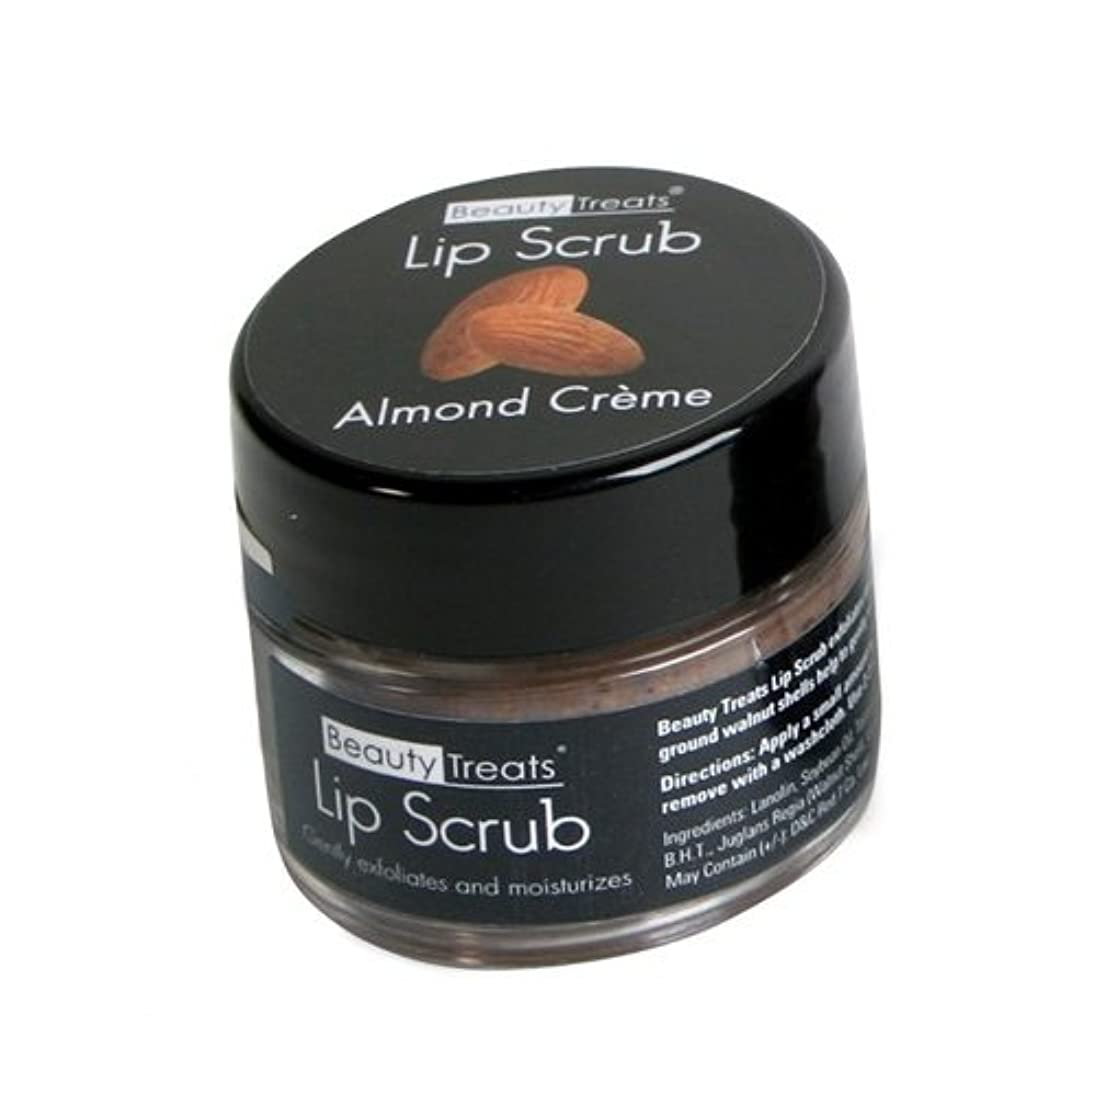 作る意味のある牛(3 Pack) BEAUTY TREATS Lip Scrub - Almond Creme (並行輸入品)